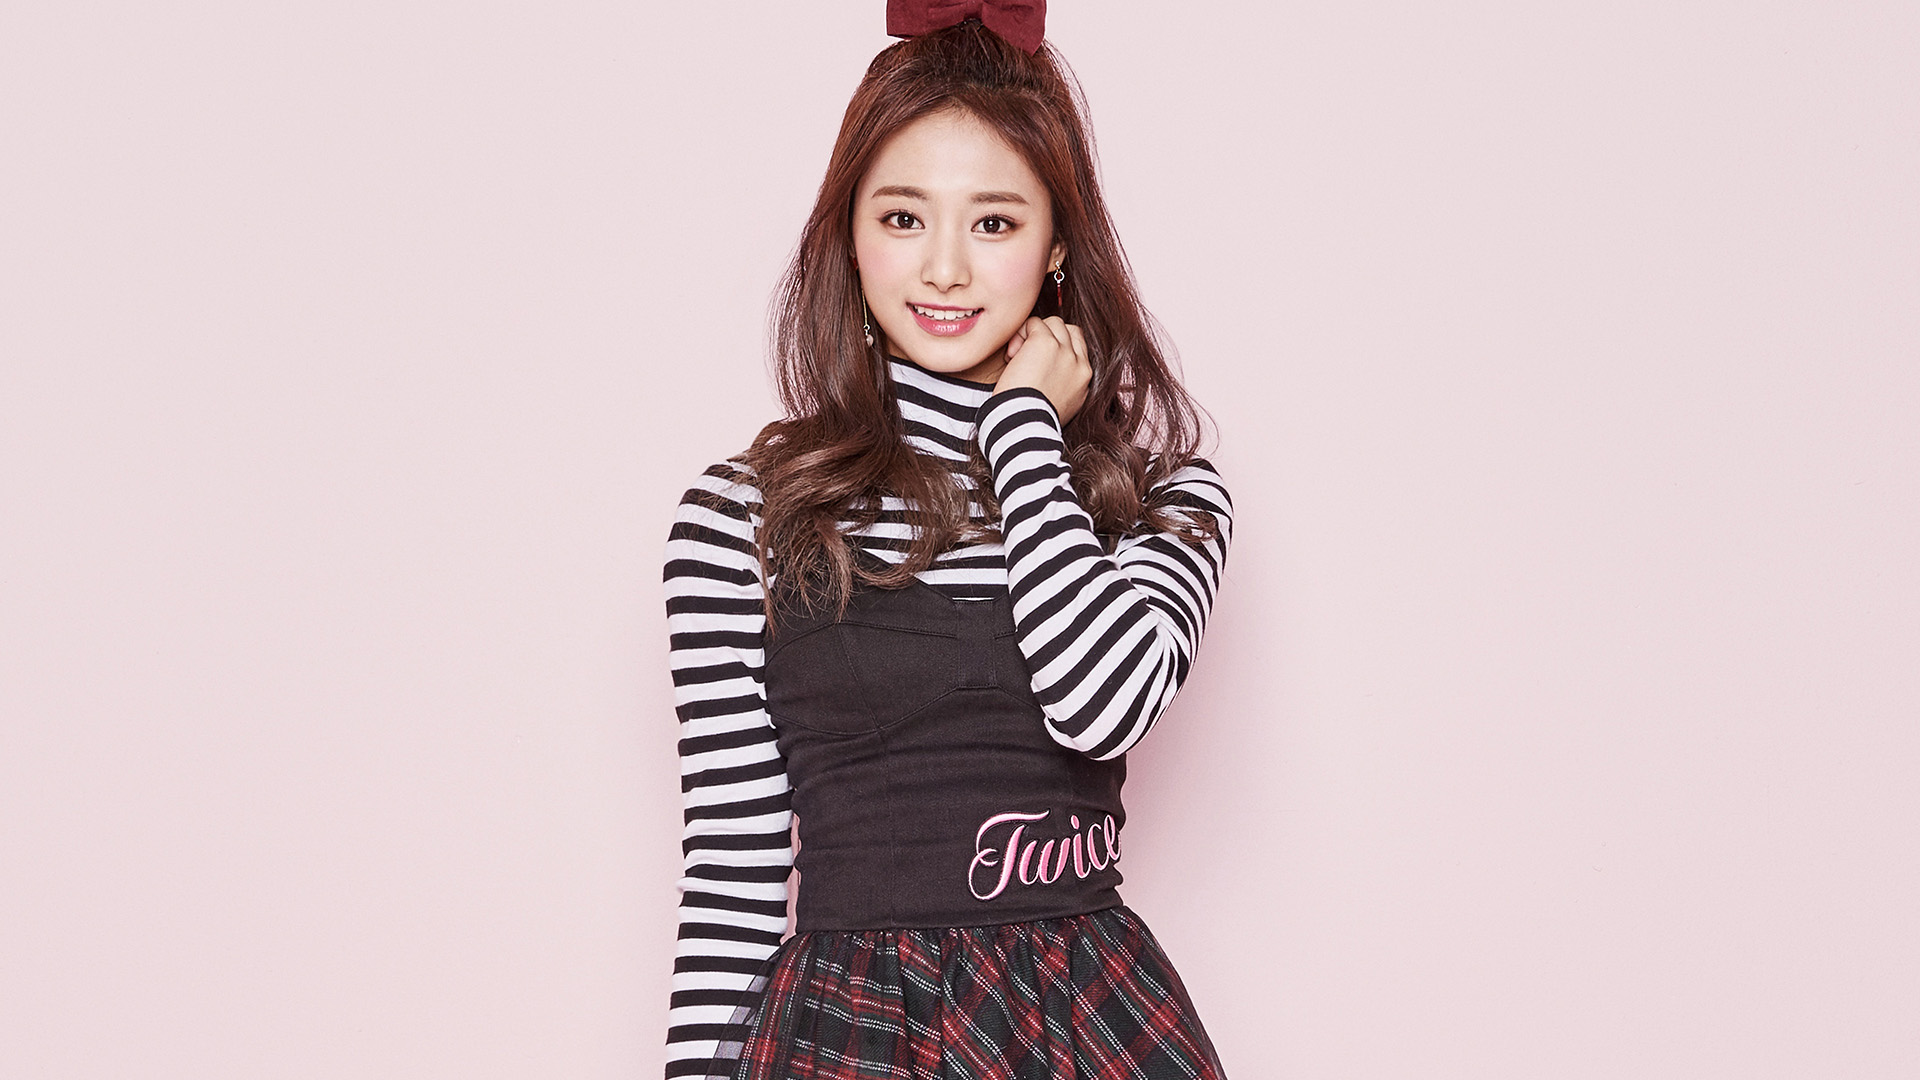 Cute Fall Computer Wallpaper Hm34 Twice Kpop Tzuyu Pink Cute Wallpaper